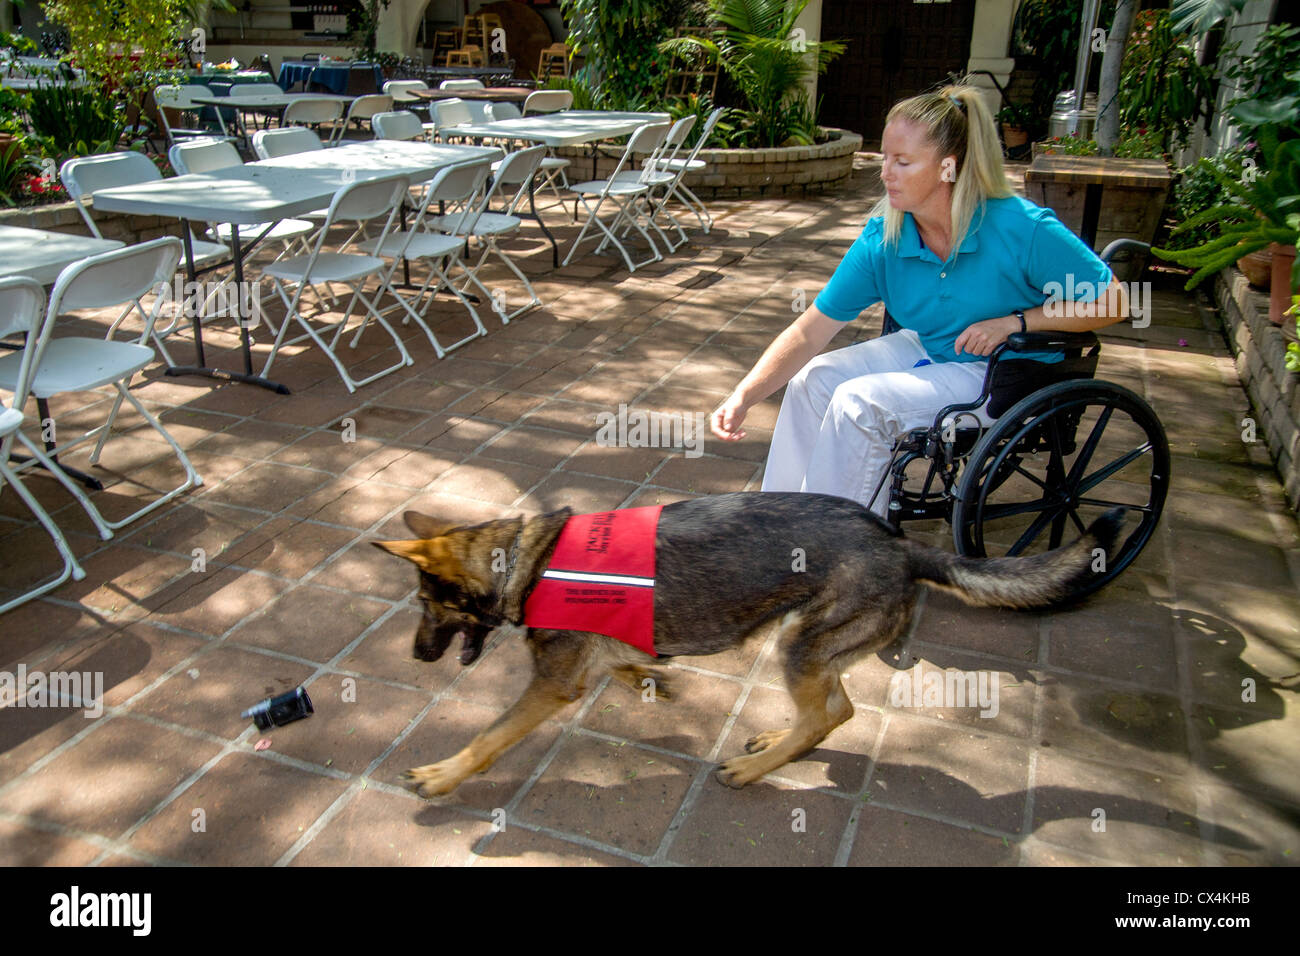 A trained service dog retrieves a dropped cell phone for his handicapped owner in Orange, CA. - Stock Image